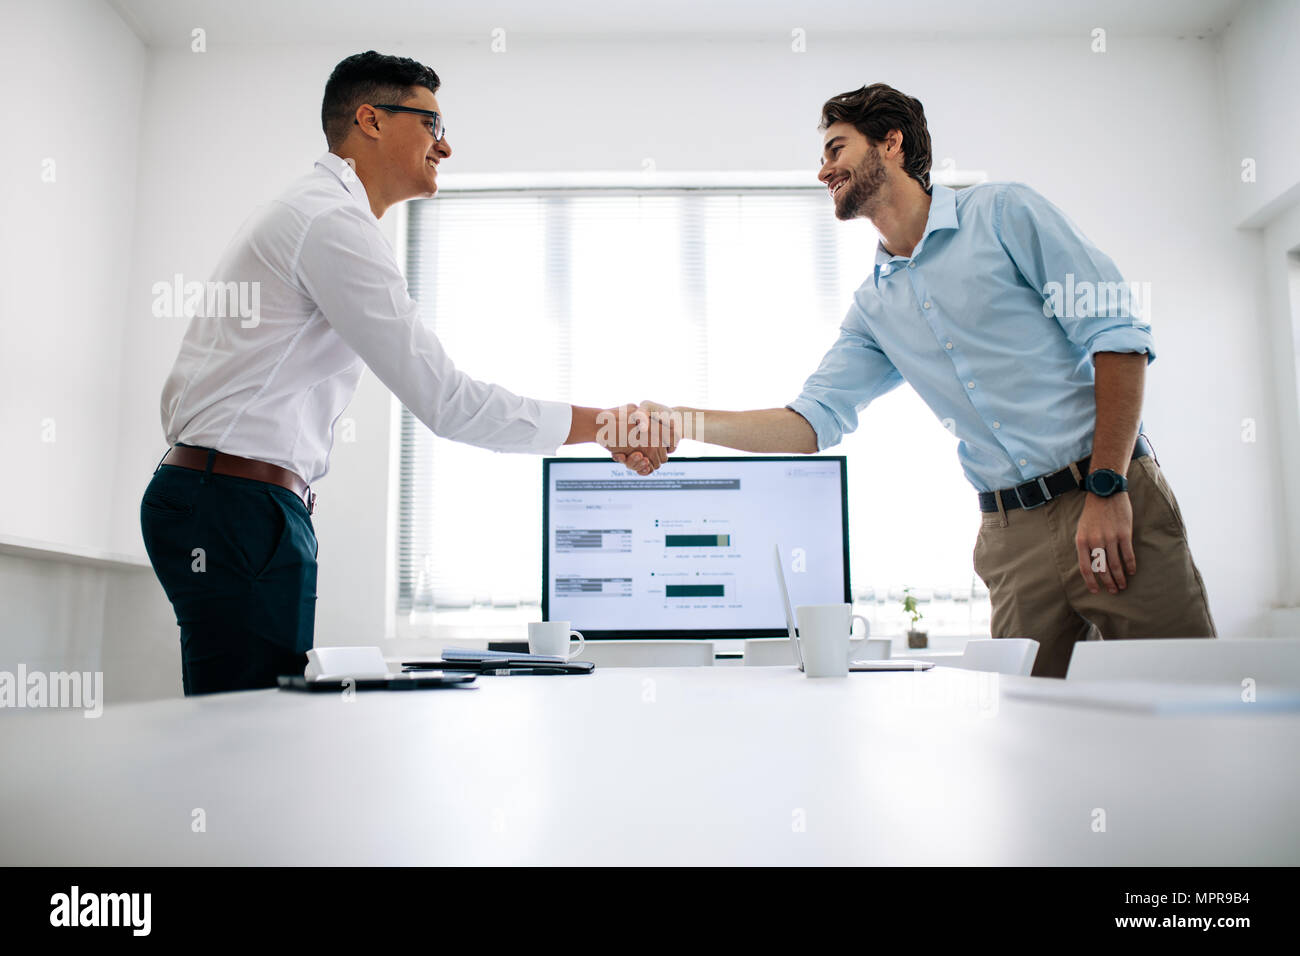 Business colleagues shaking hands in the conference table. Happy businessmen greeting each other in the meeting room. - Stock Image